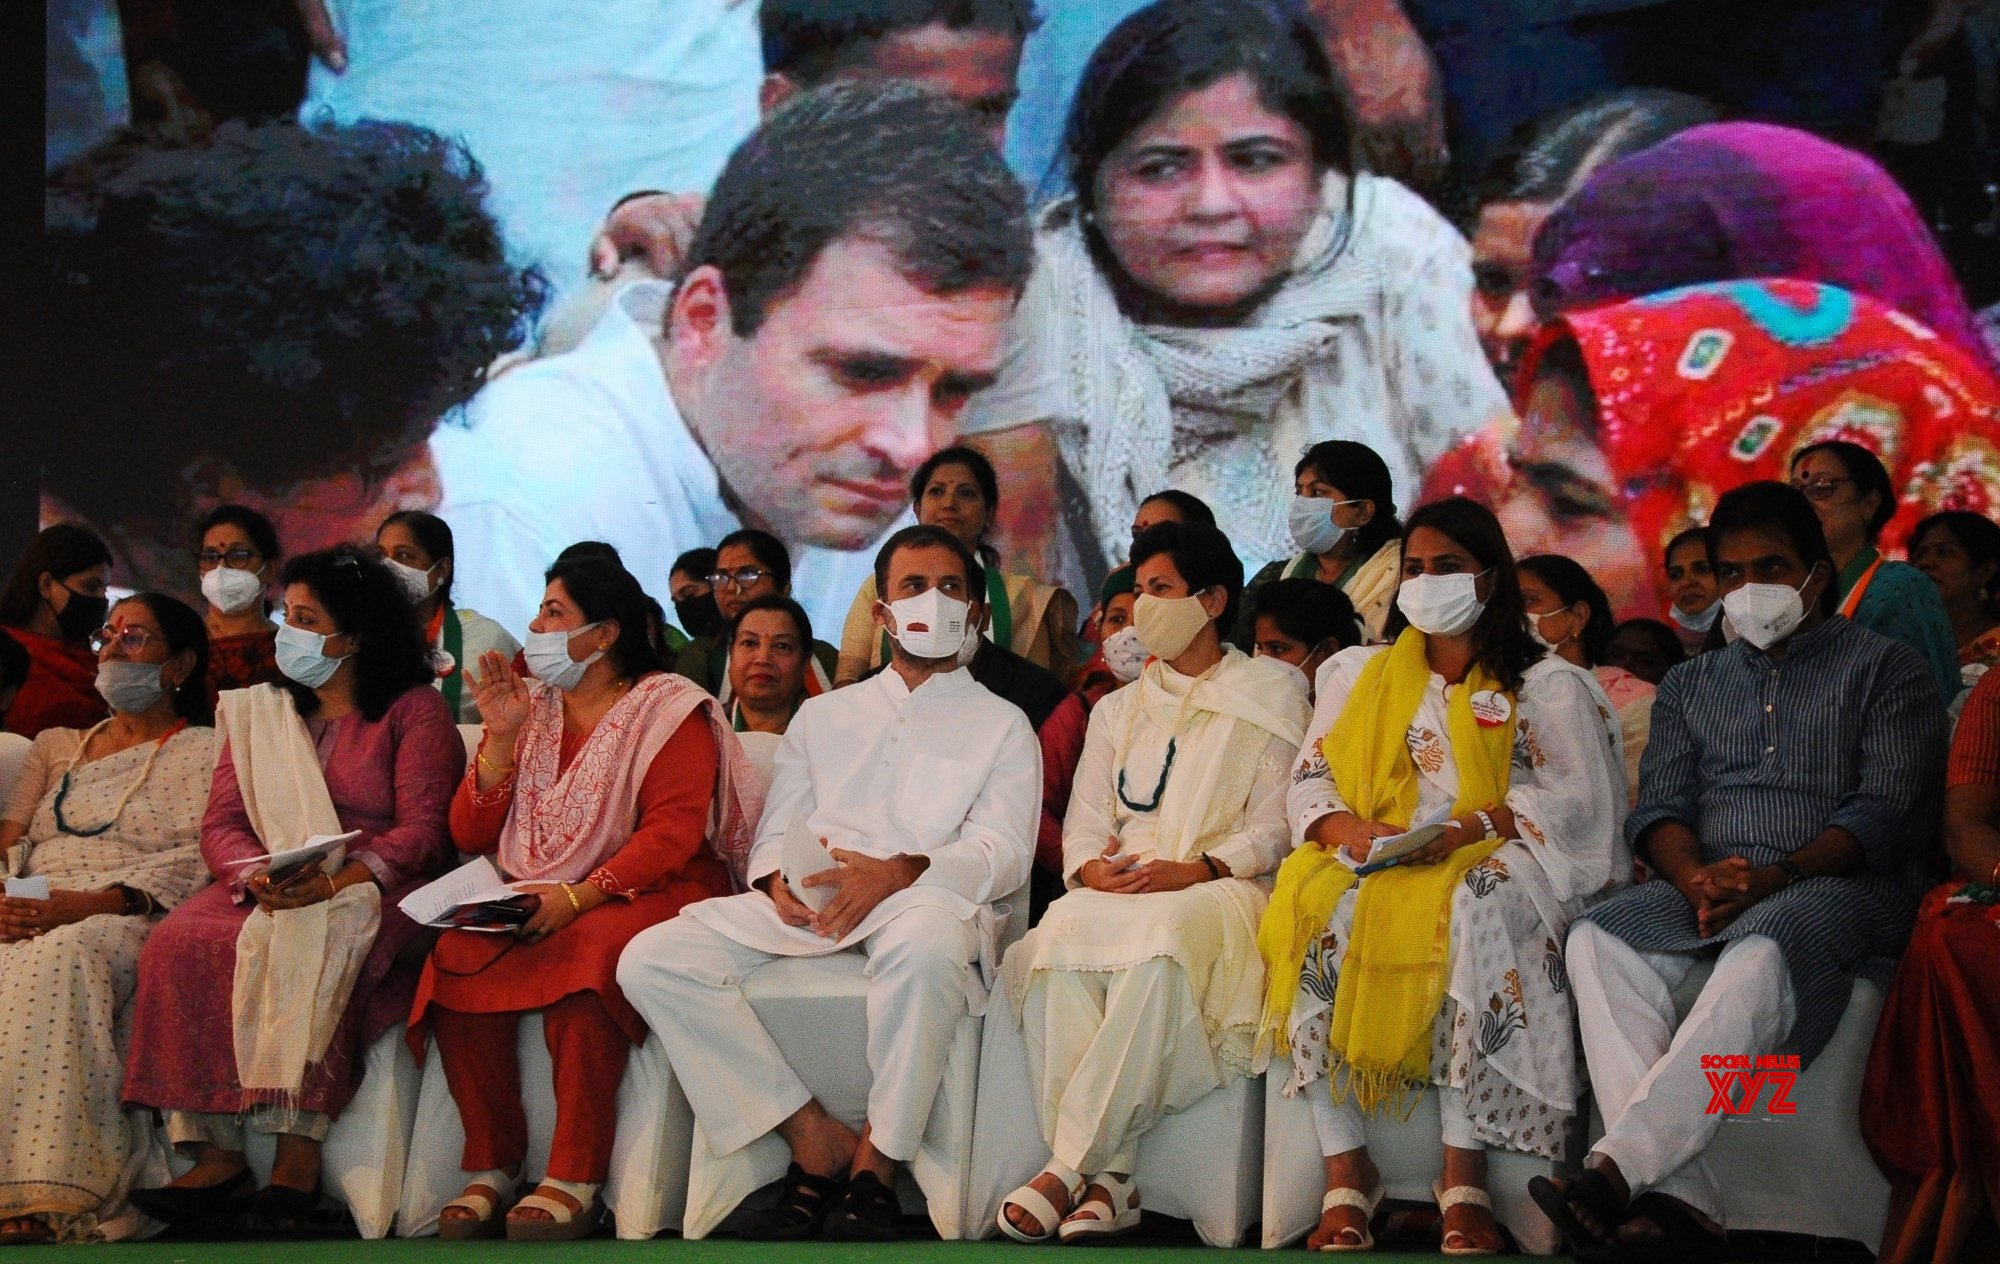 New Delhi: Senior Congress leader Rahul Gandhi during All India Mahila Congress, 38th Foundation Day at AICC HQ in New Delhi on Wednesday, September 15, 2021. #Gallery